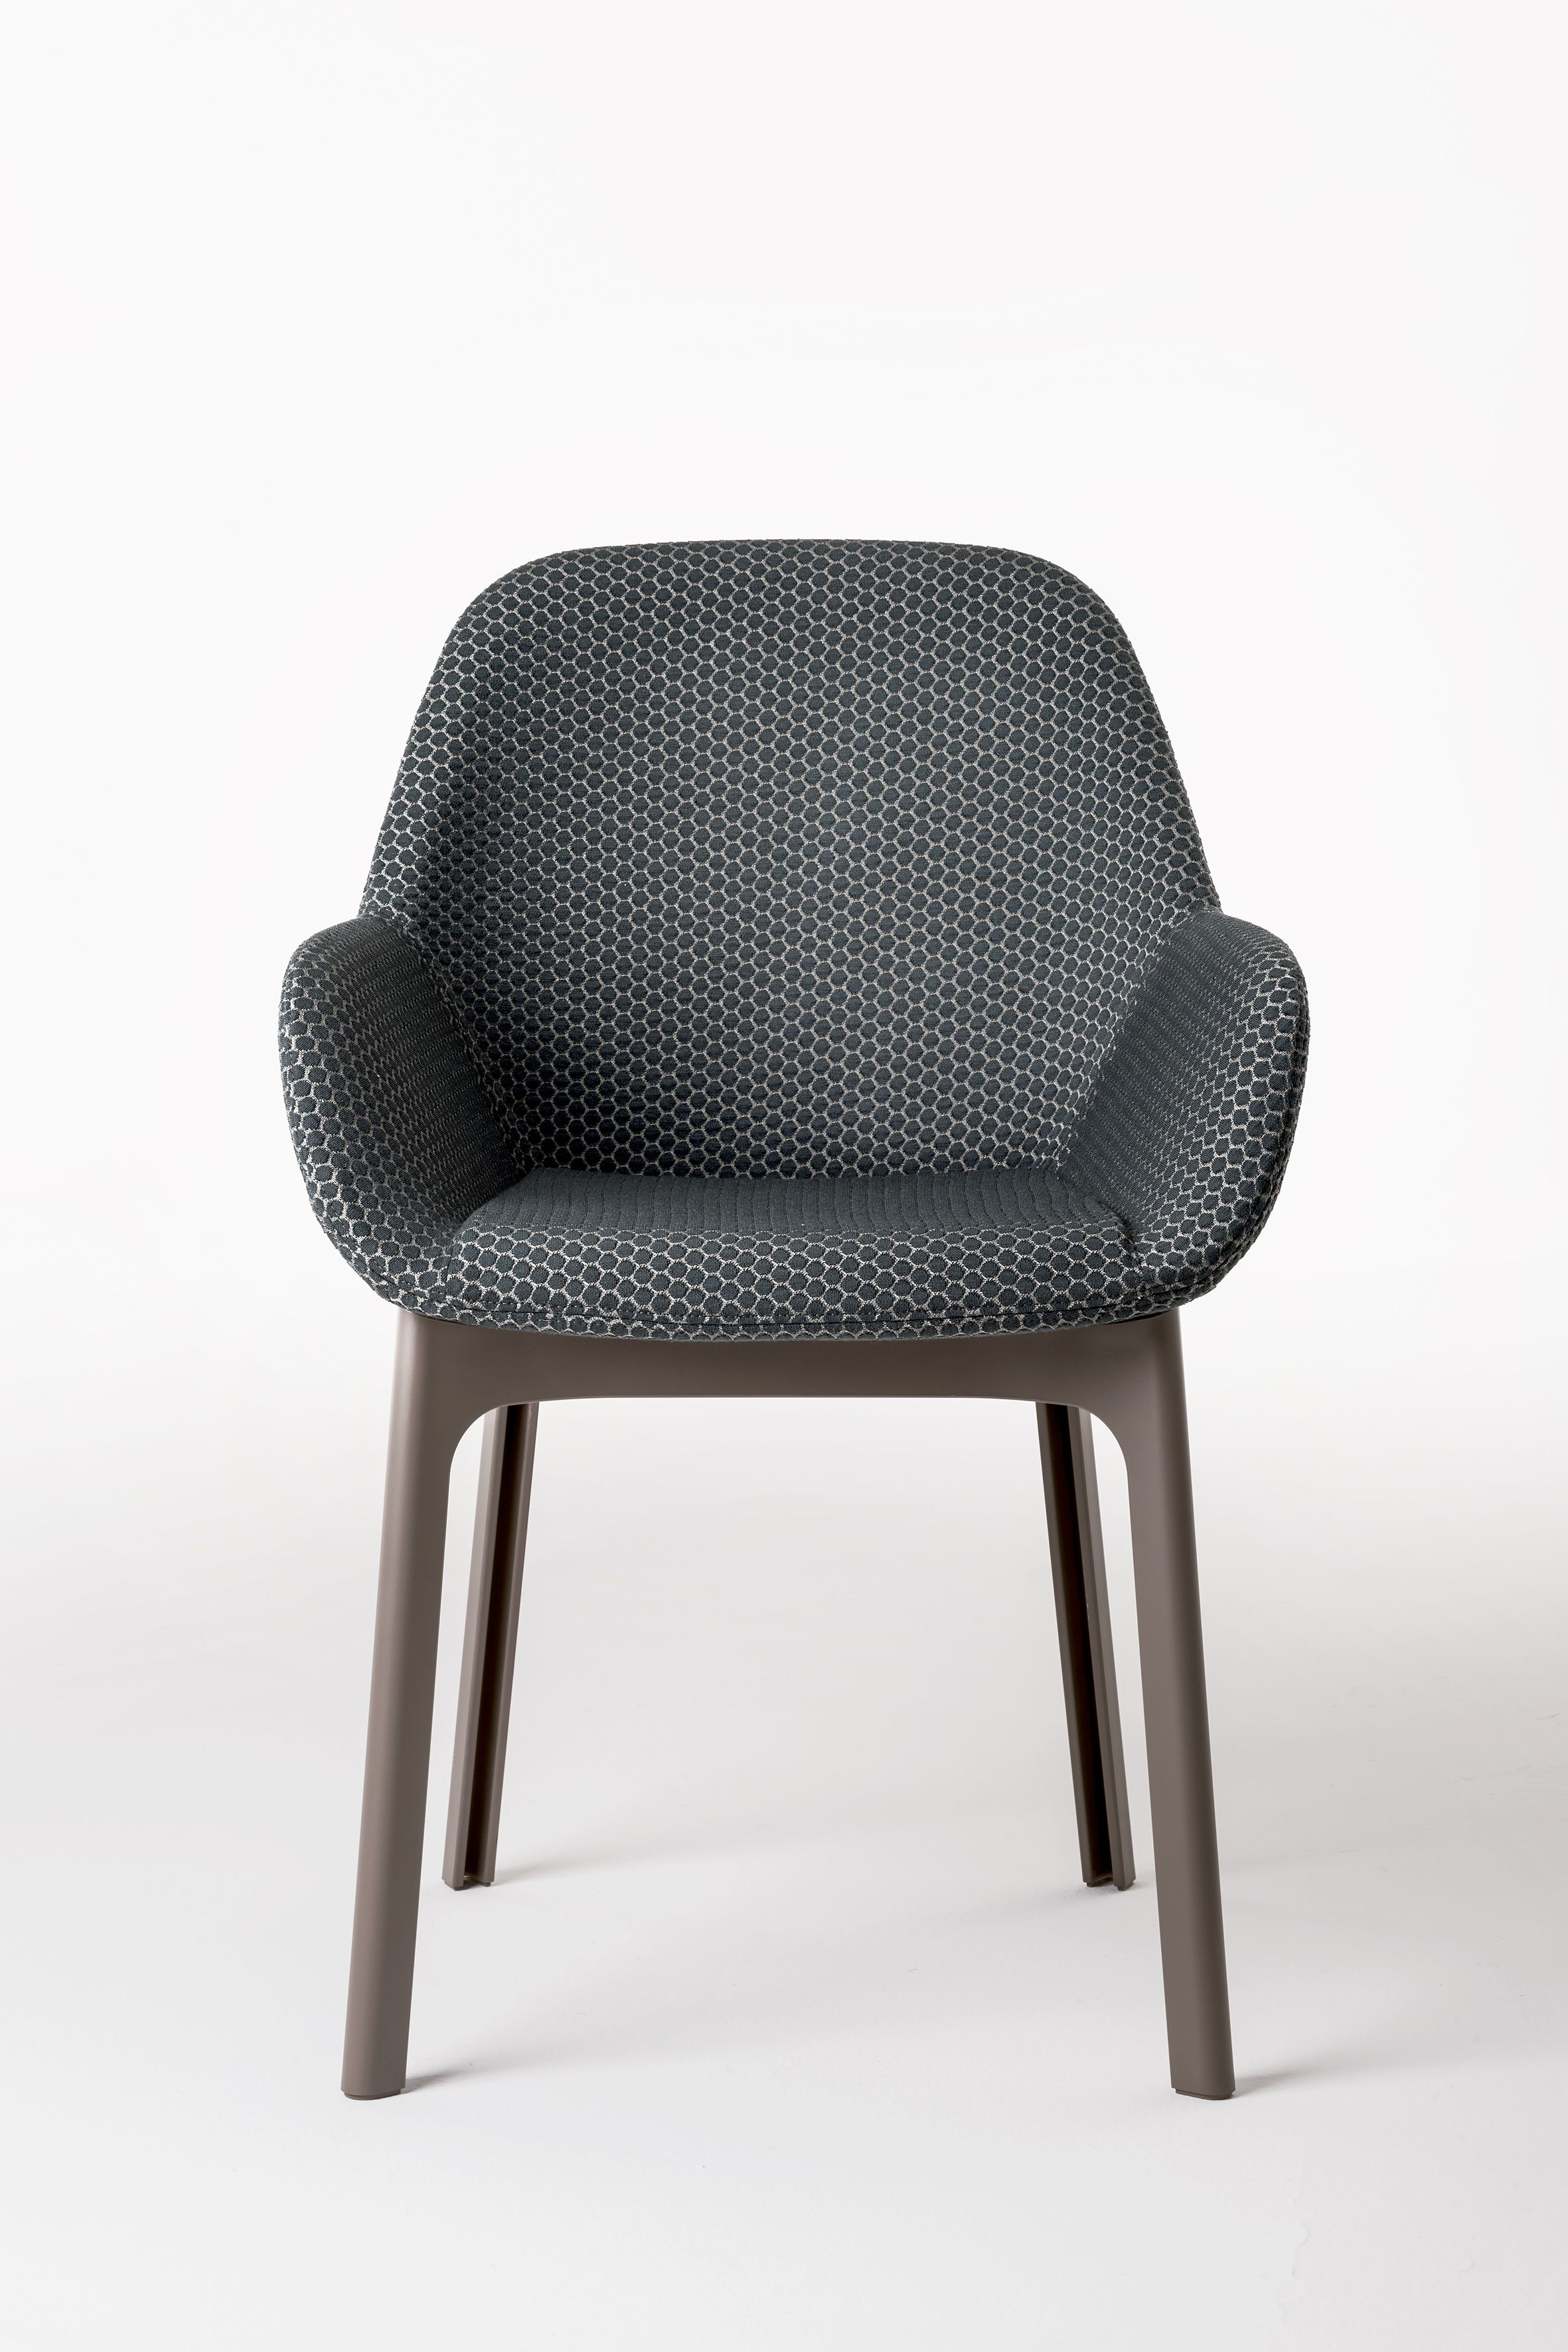 Design Chair Kartell Hanging In Balcony Fauteuil Patricia Urquiola 椅子 Armchair